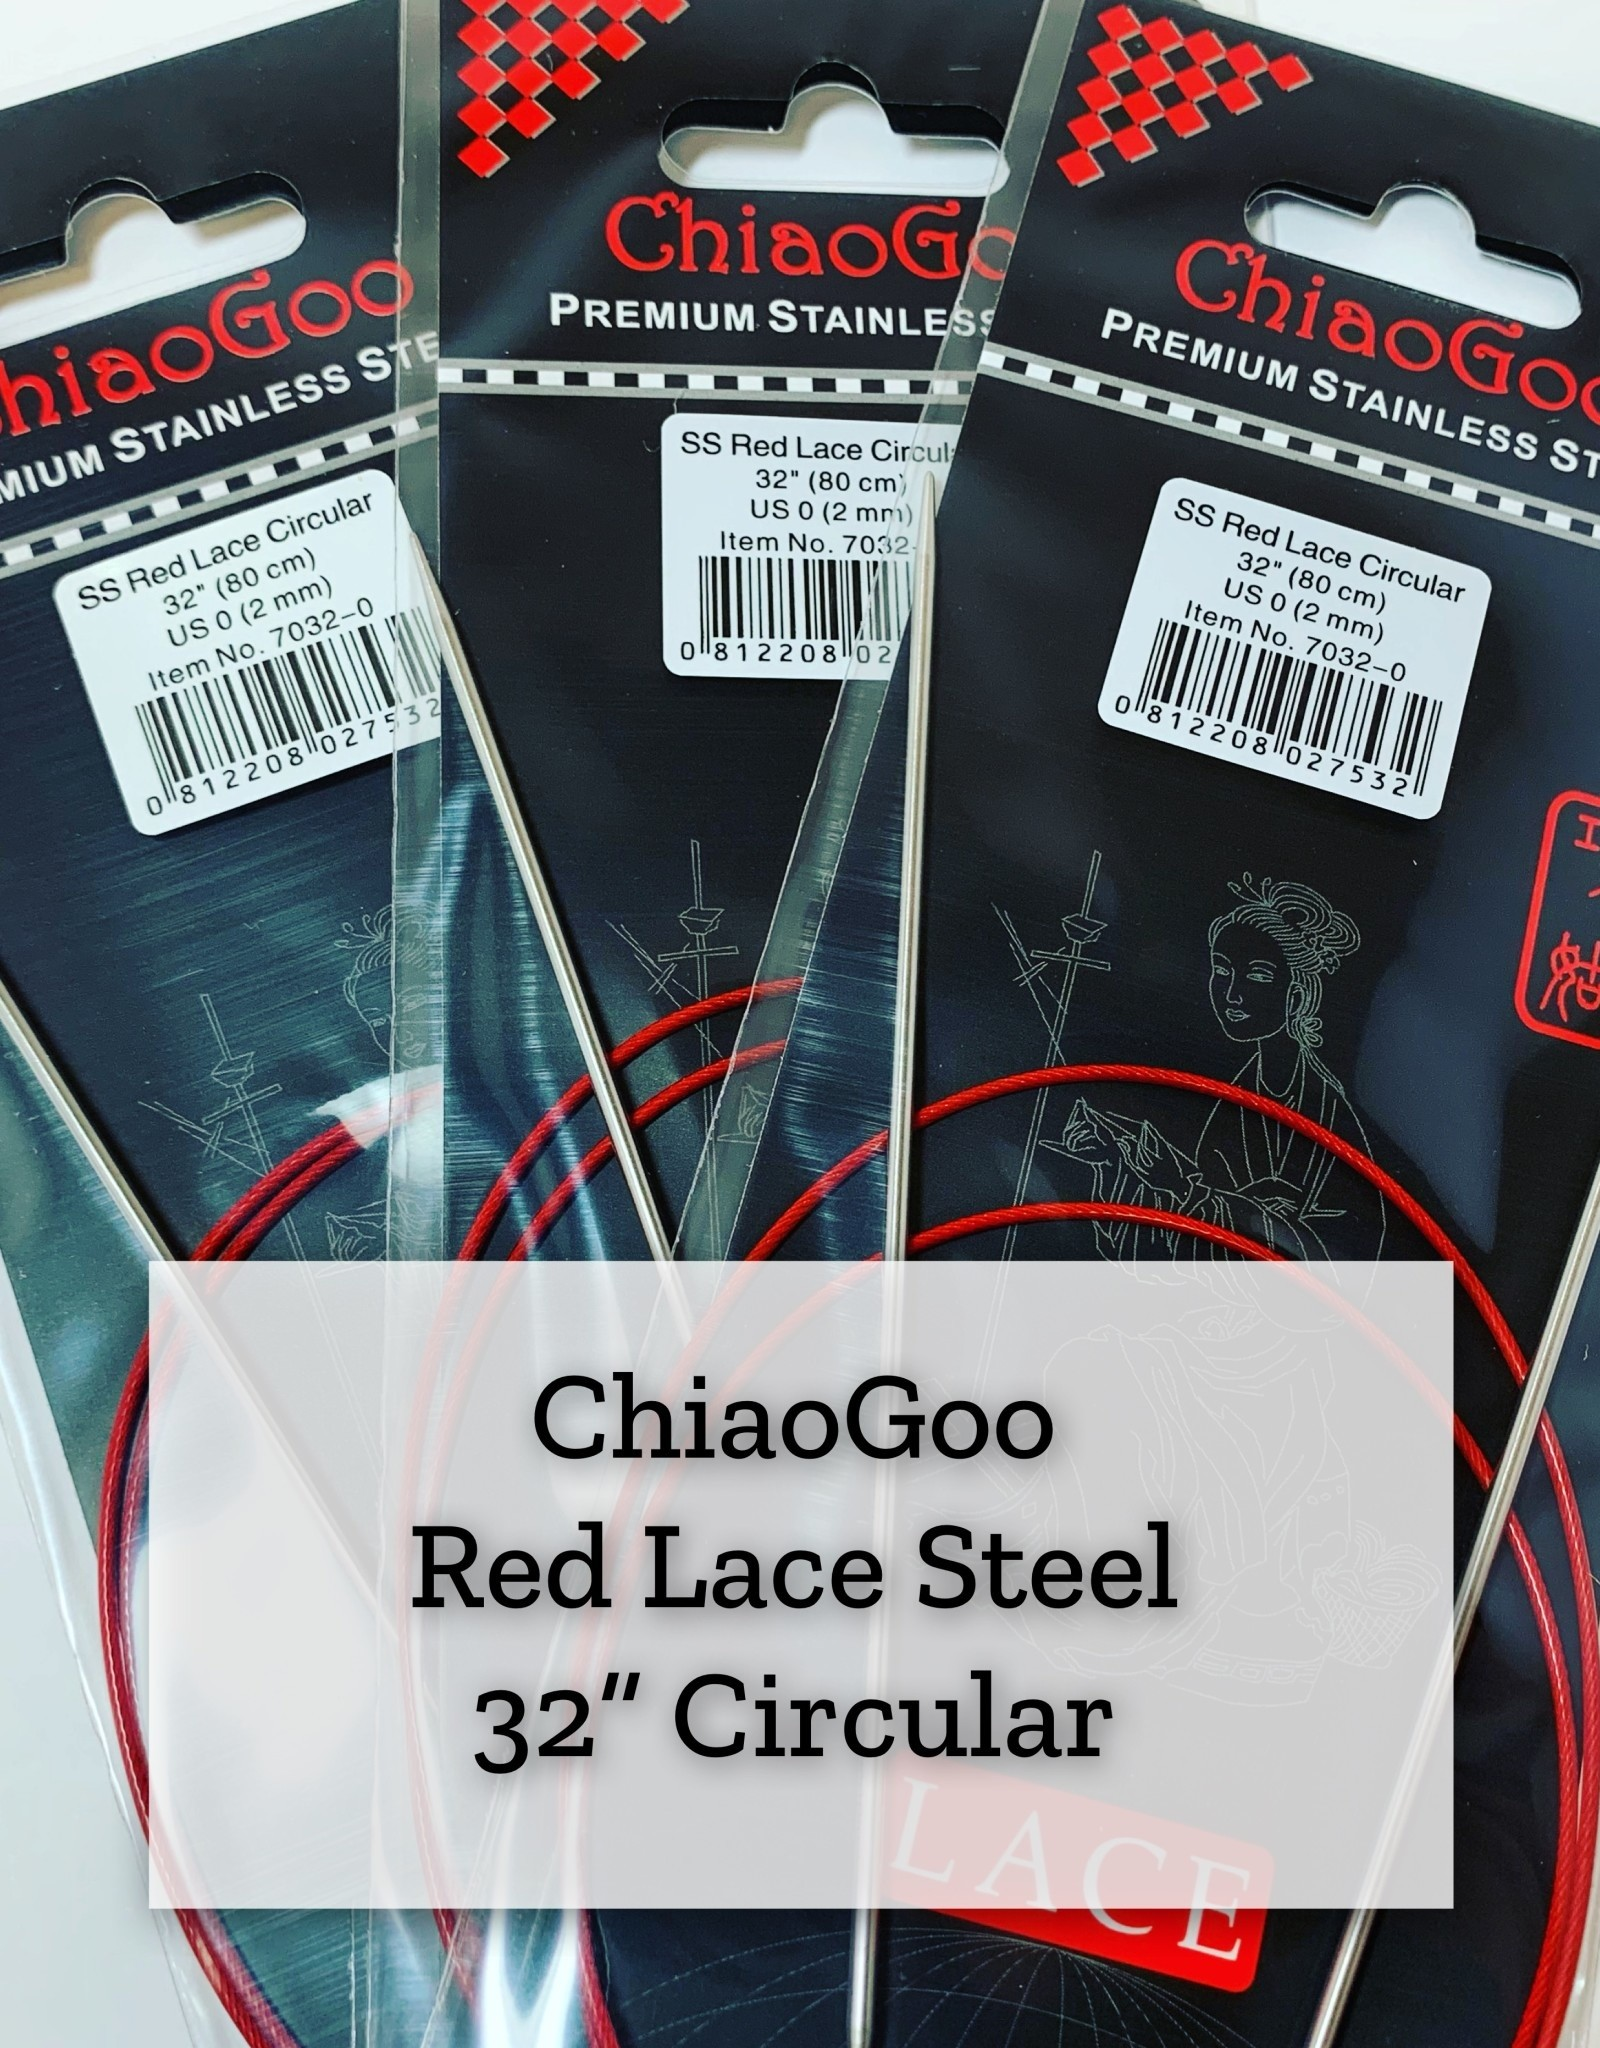 "ChiaoGoo Red Lace Steel - 32"" 2.25 mm"